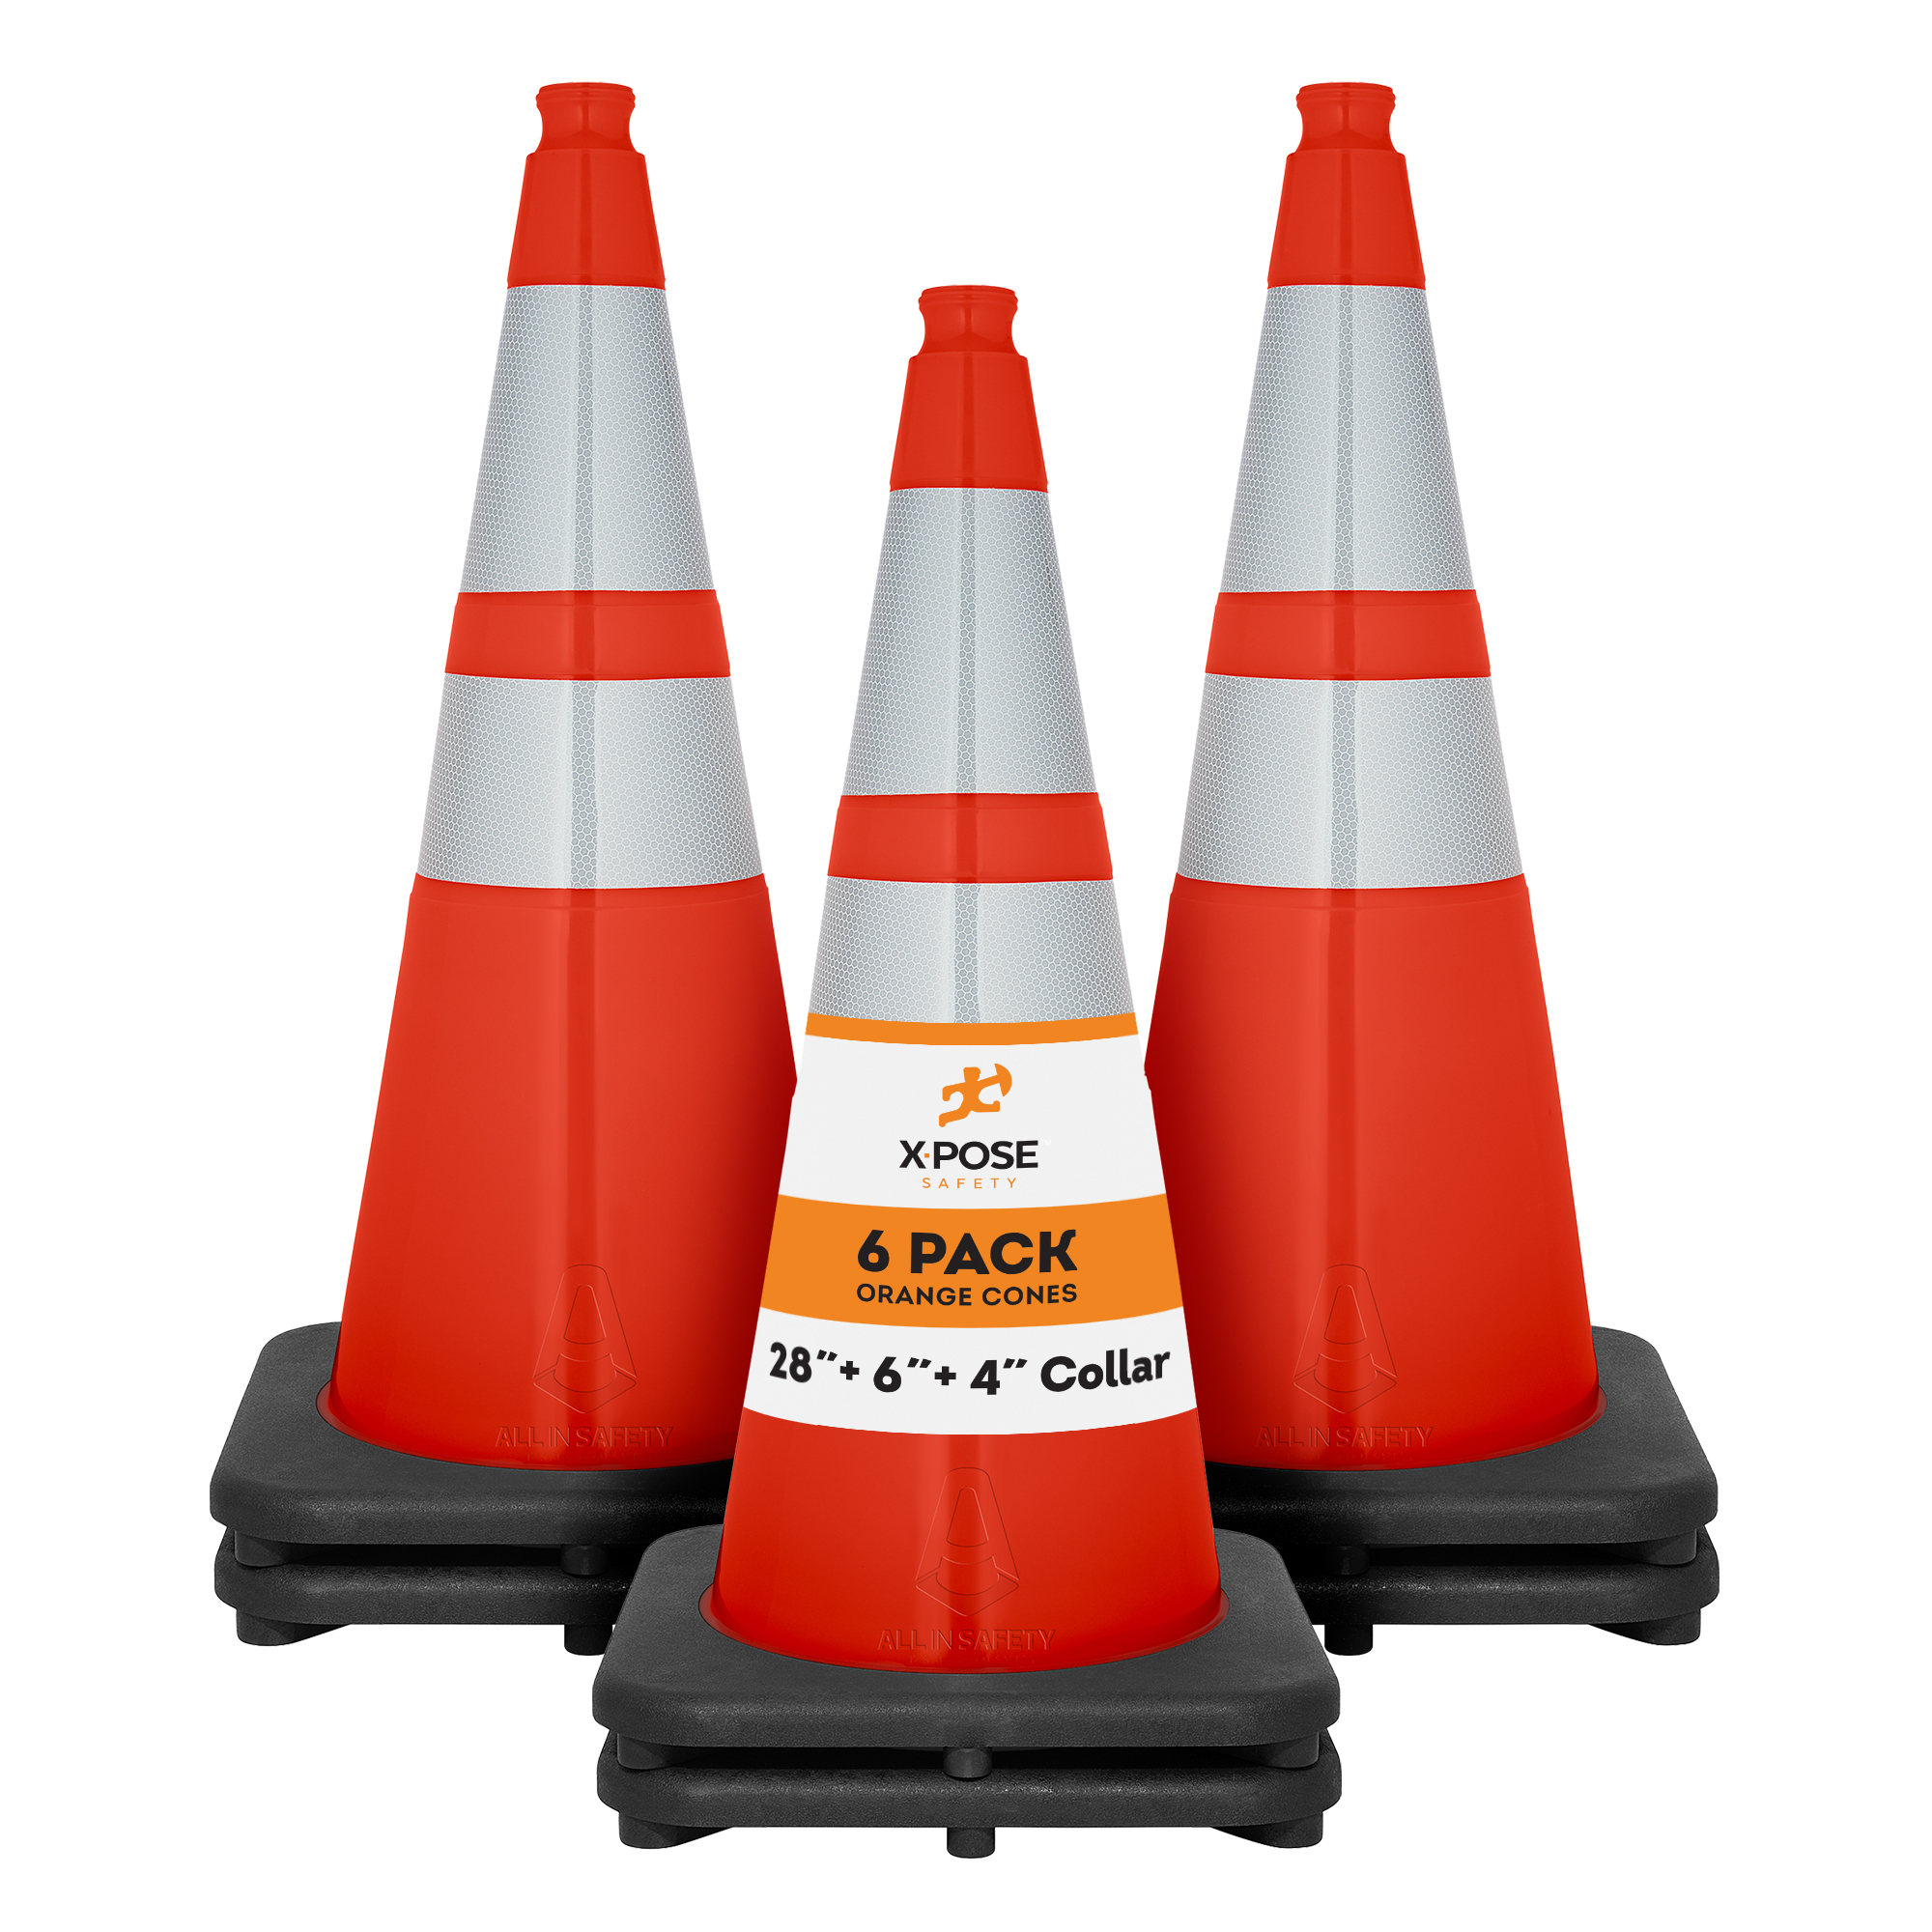 Soccer Kids and Construction Multipurpose PVC Plastic Safety Cone for Parking Caution Xpose Safety 36 Inch Orange Traffic Cones with 6 /& 4 Collars